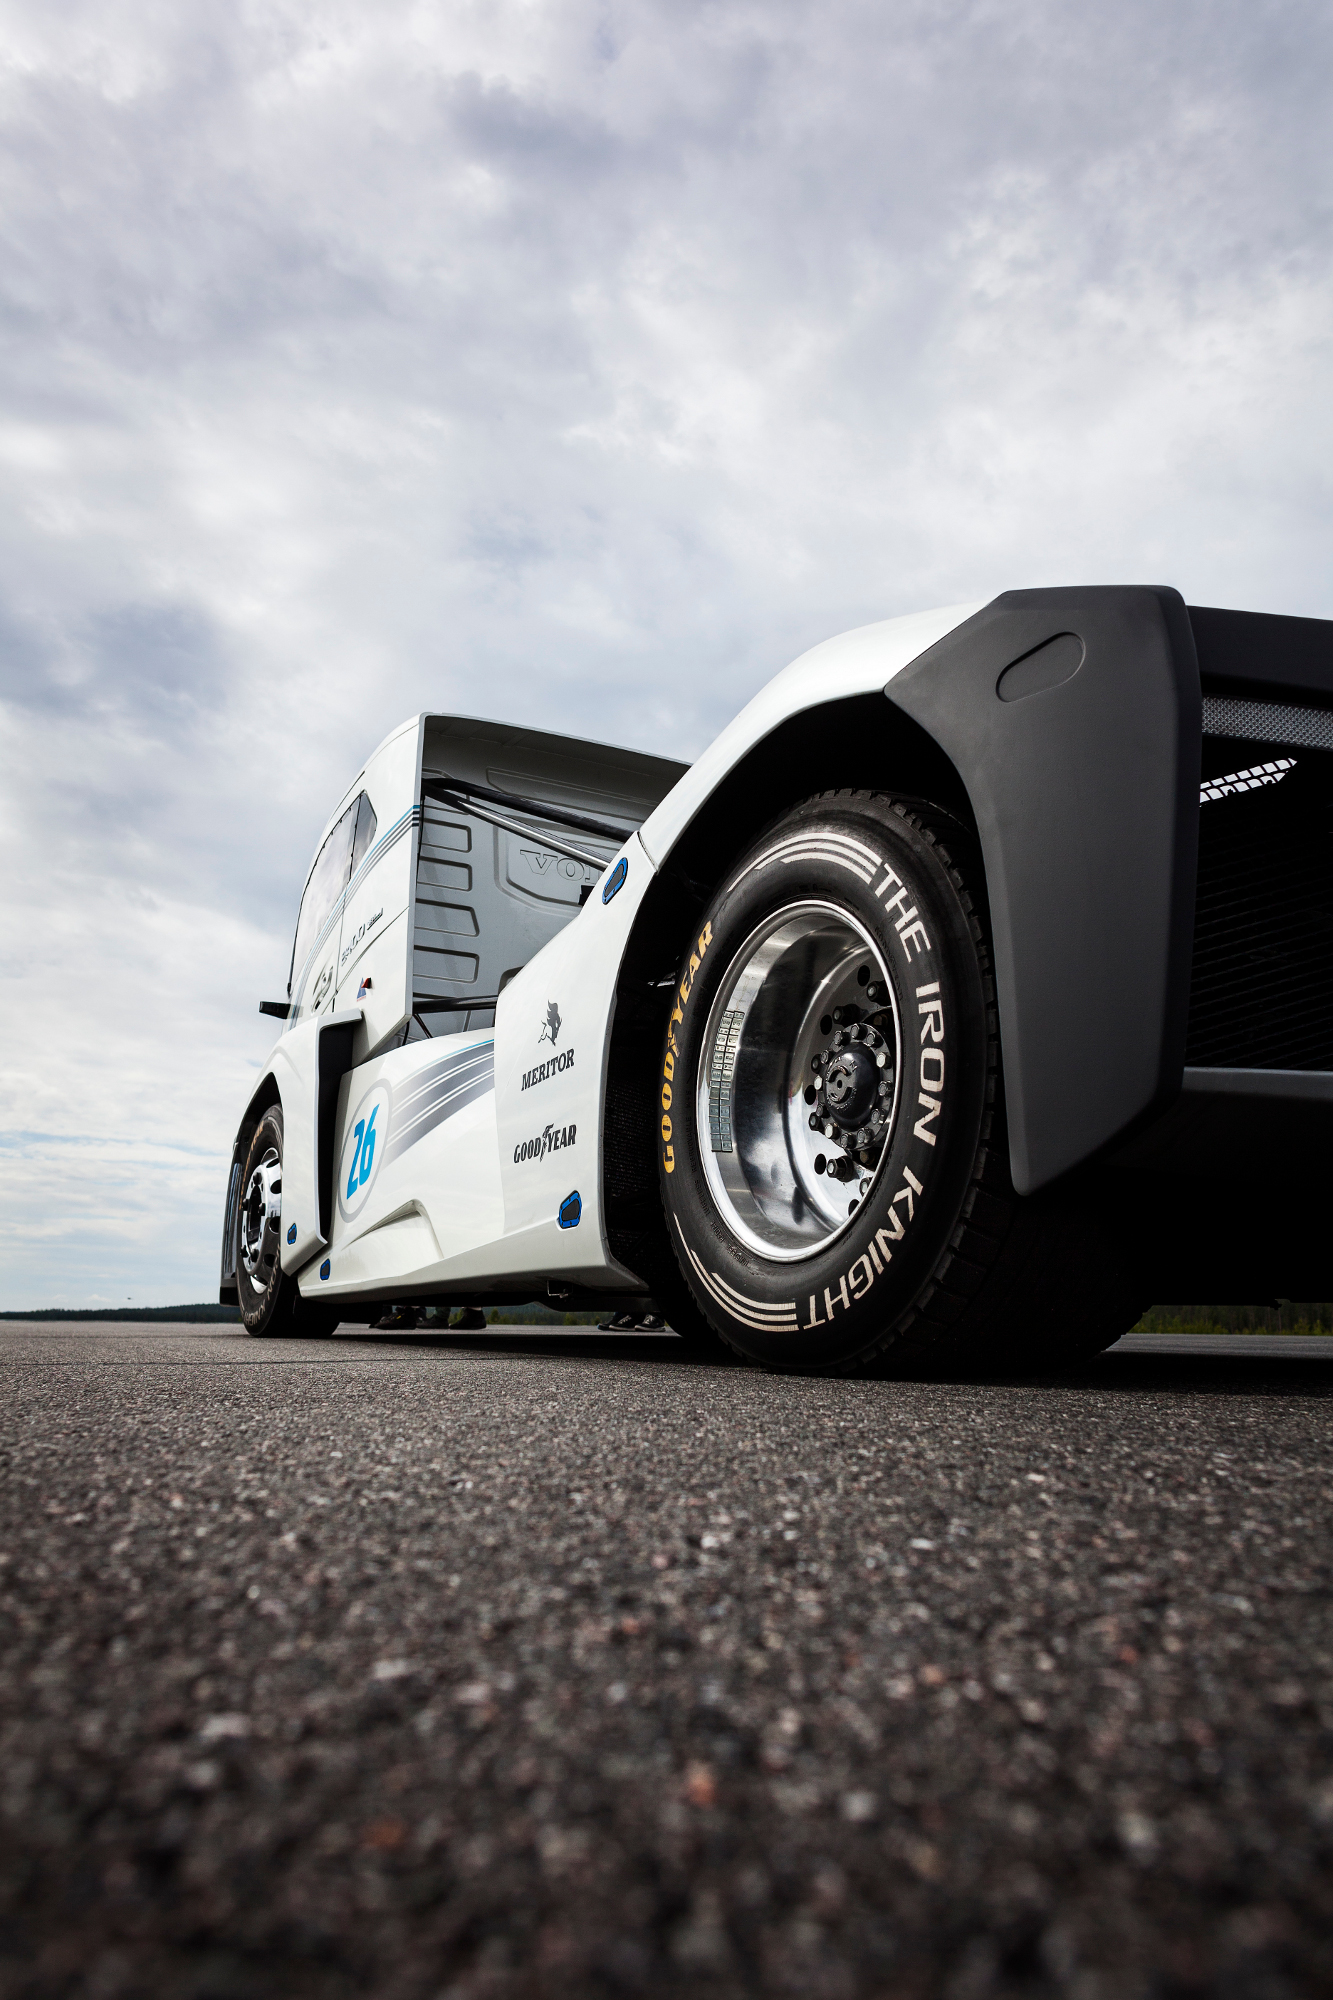 Goodyear Truck Tires The Fastest In The World